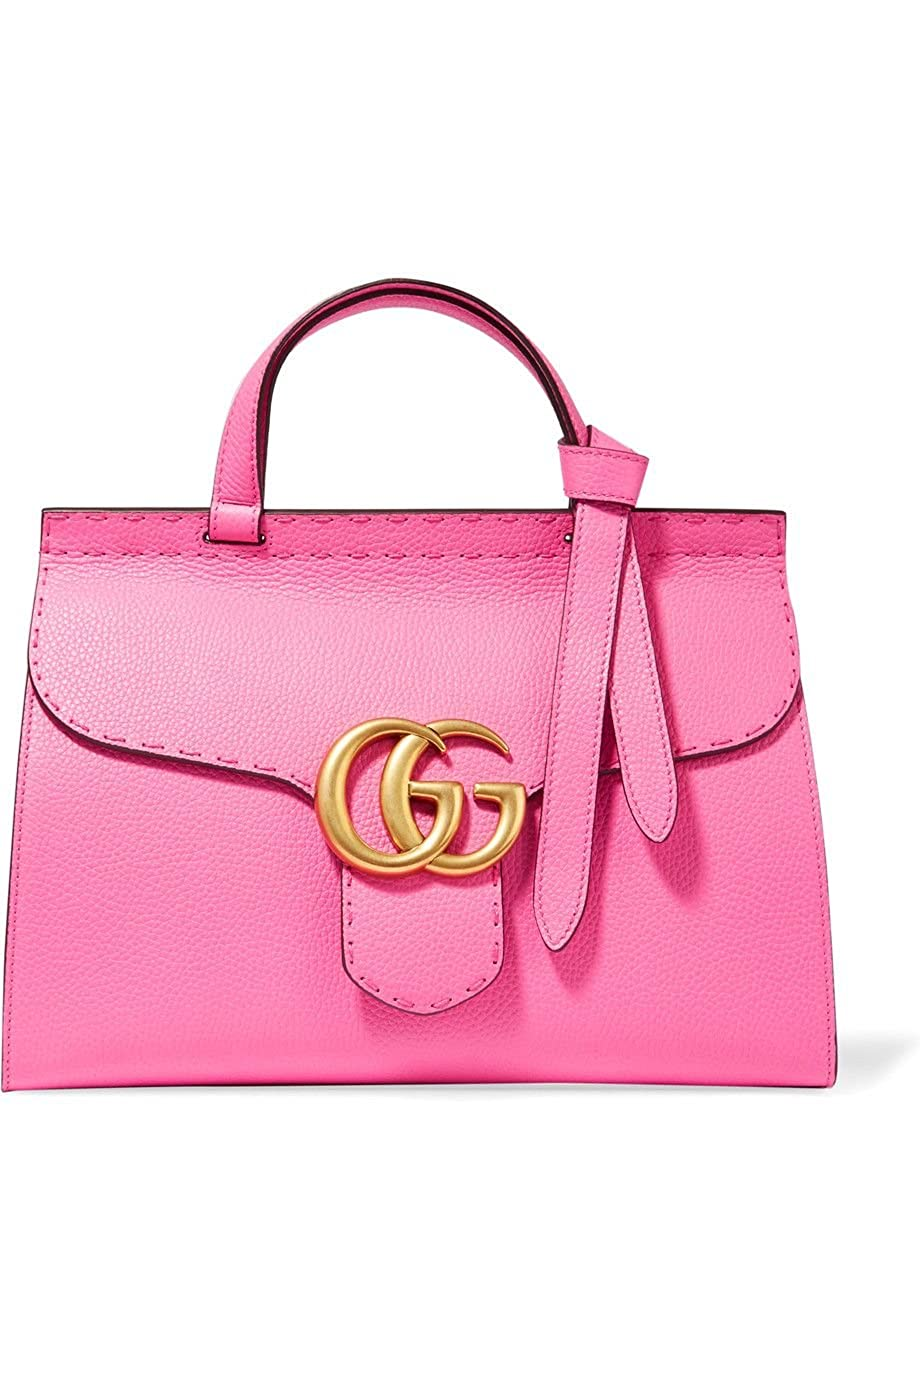 191e93f43852 Amazon.com: Gucci Marmont Pink Tropical Flower Bag Top Shoulder Box Leather  Italy Gold New: Shoes